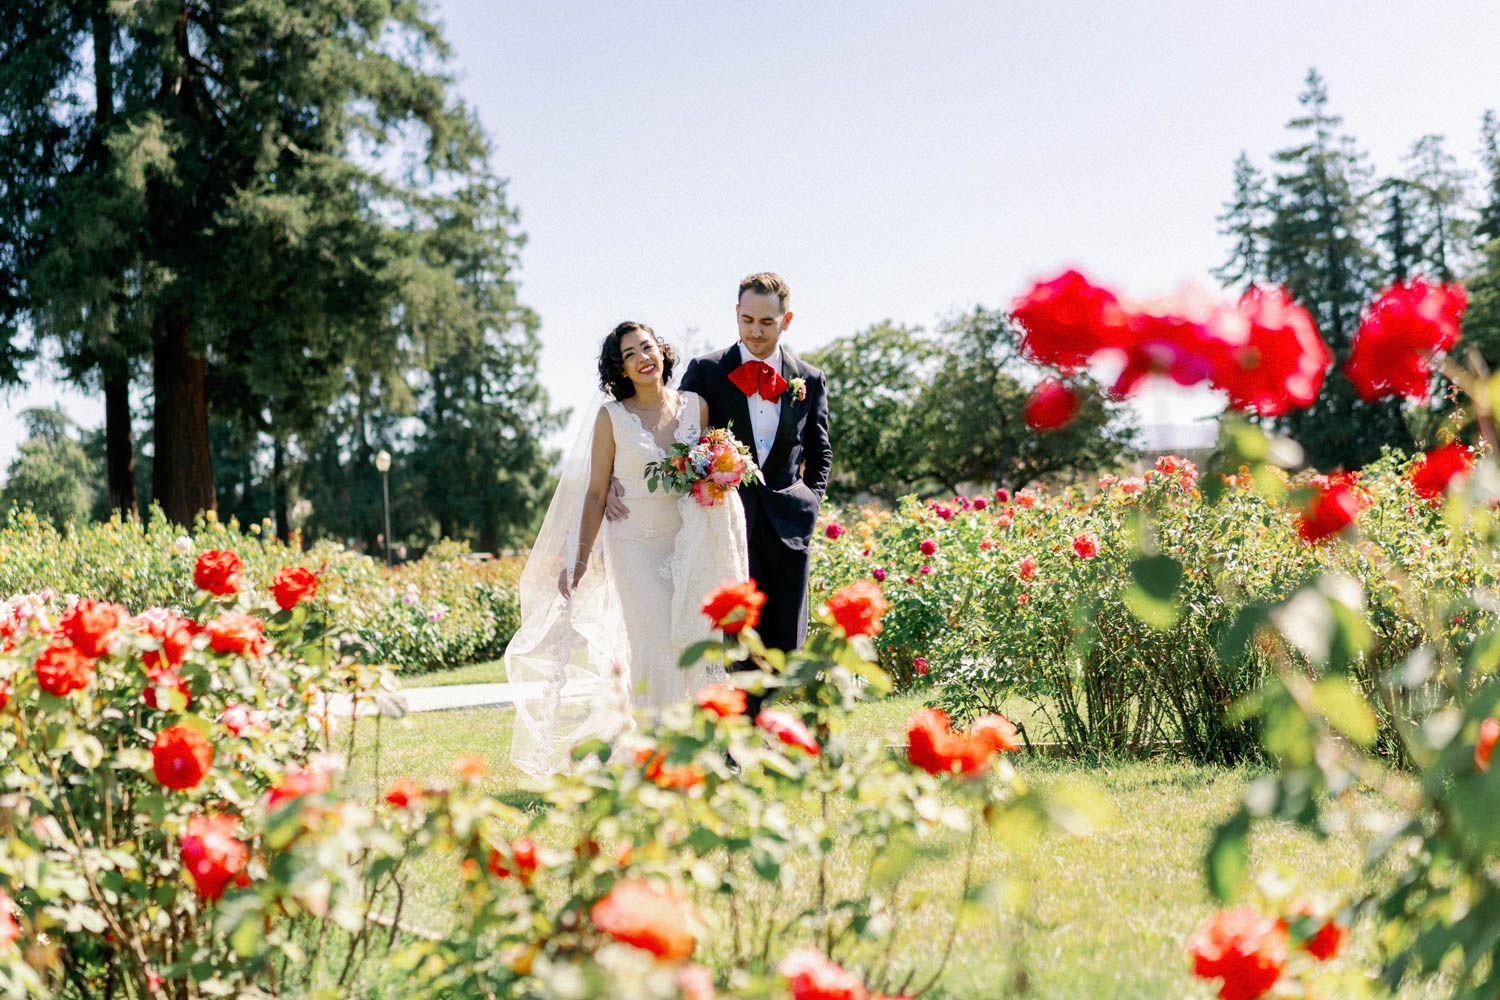 San Jose Rose Garden Wedding Couple Portrait Bride and Groom